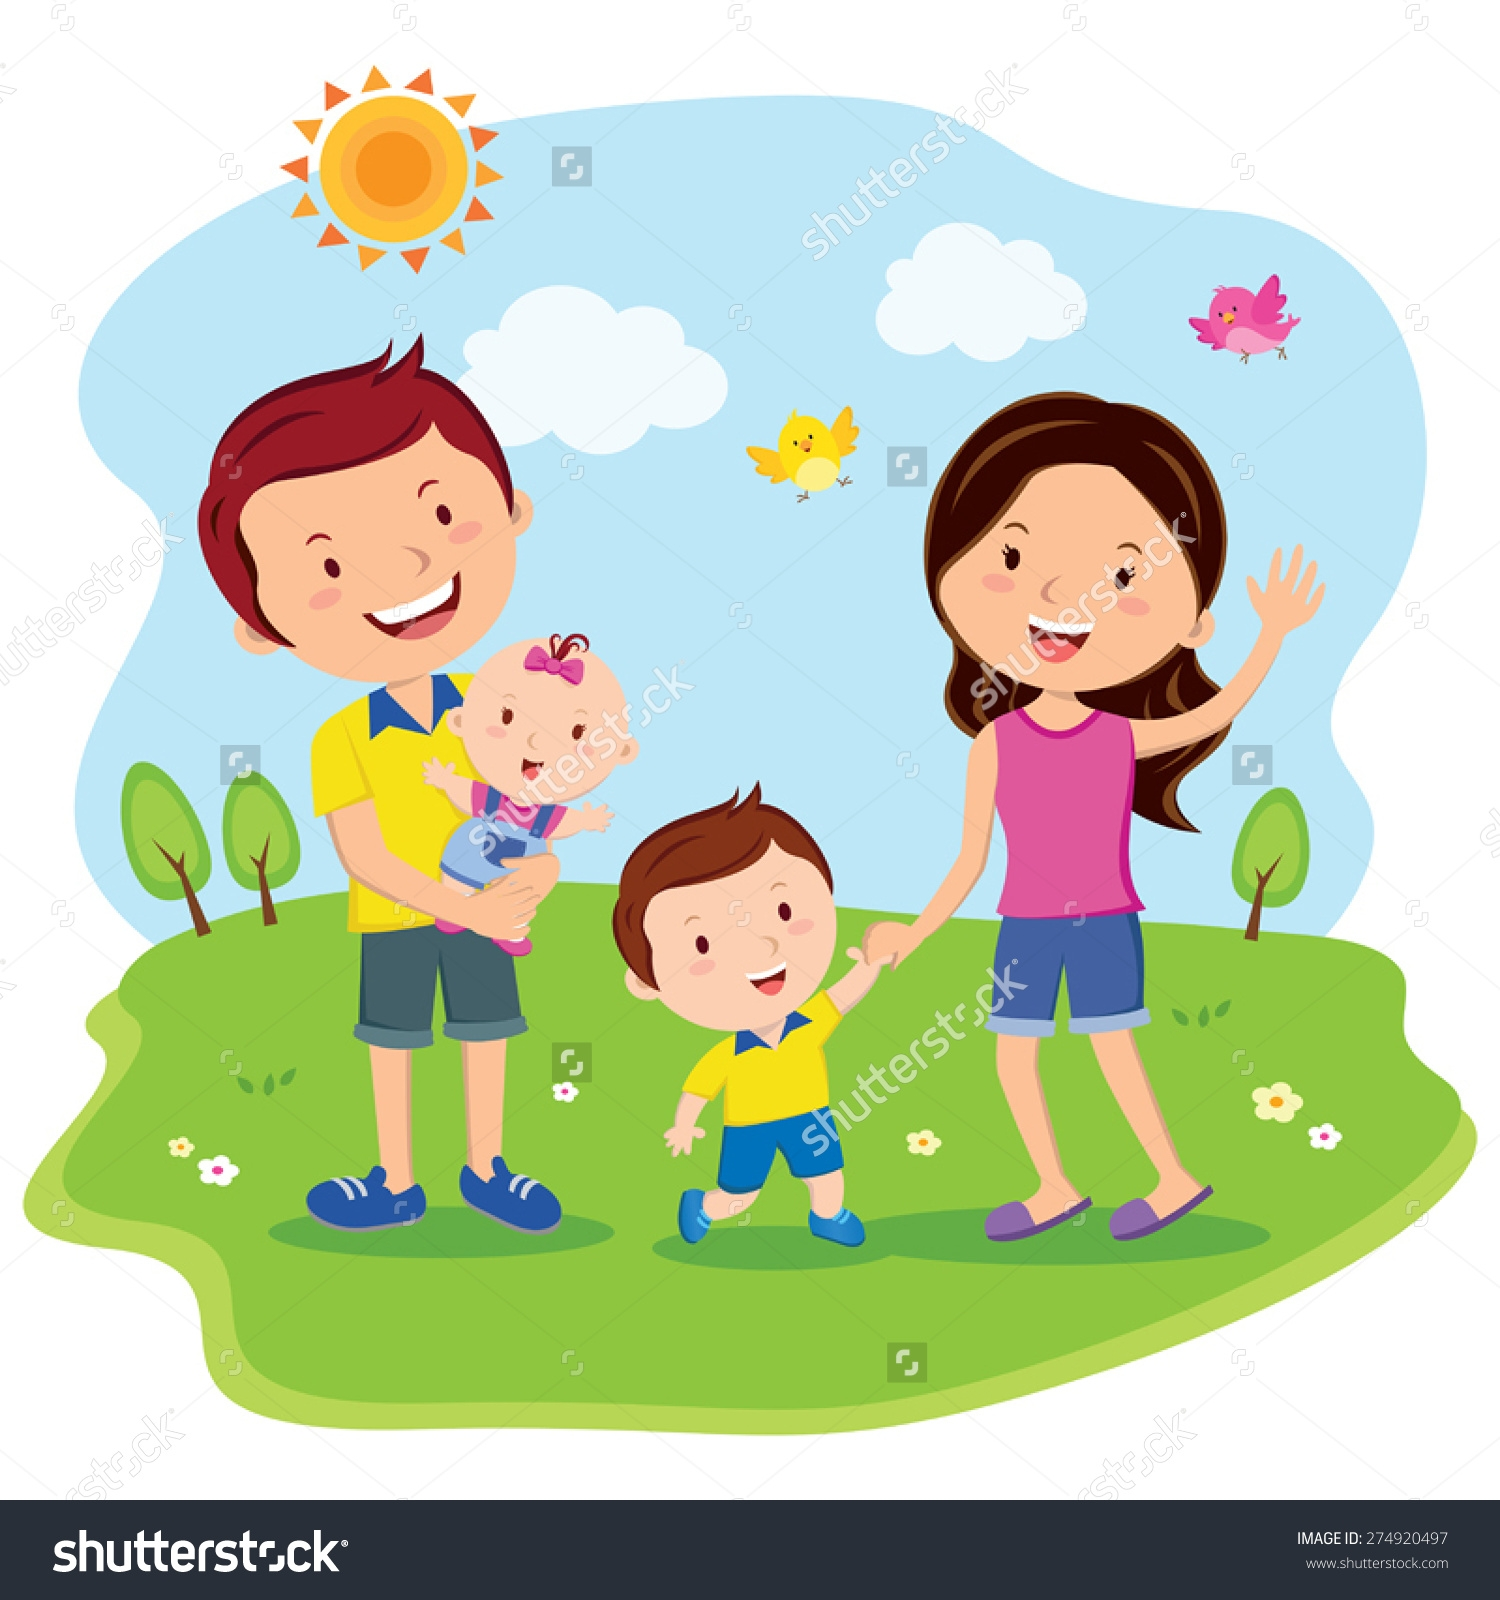 Happy Family Life Clip Art Family Day Clipart Free Clipground